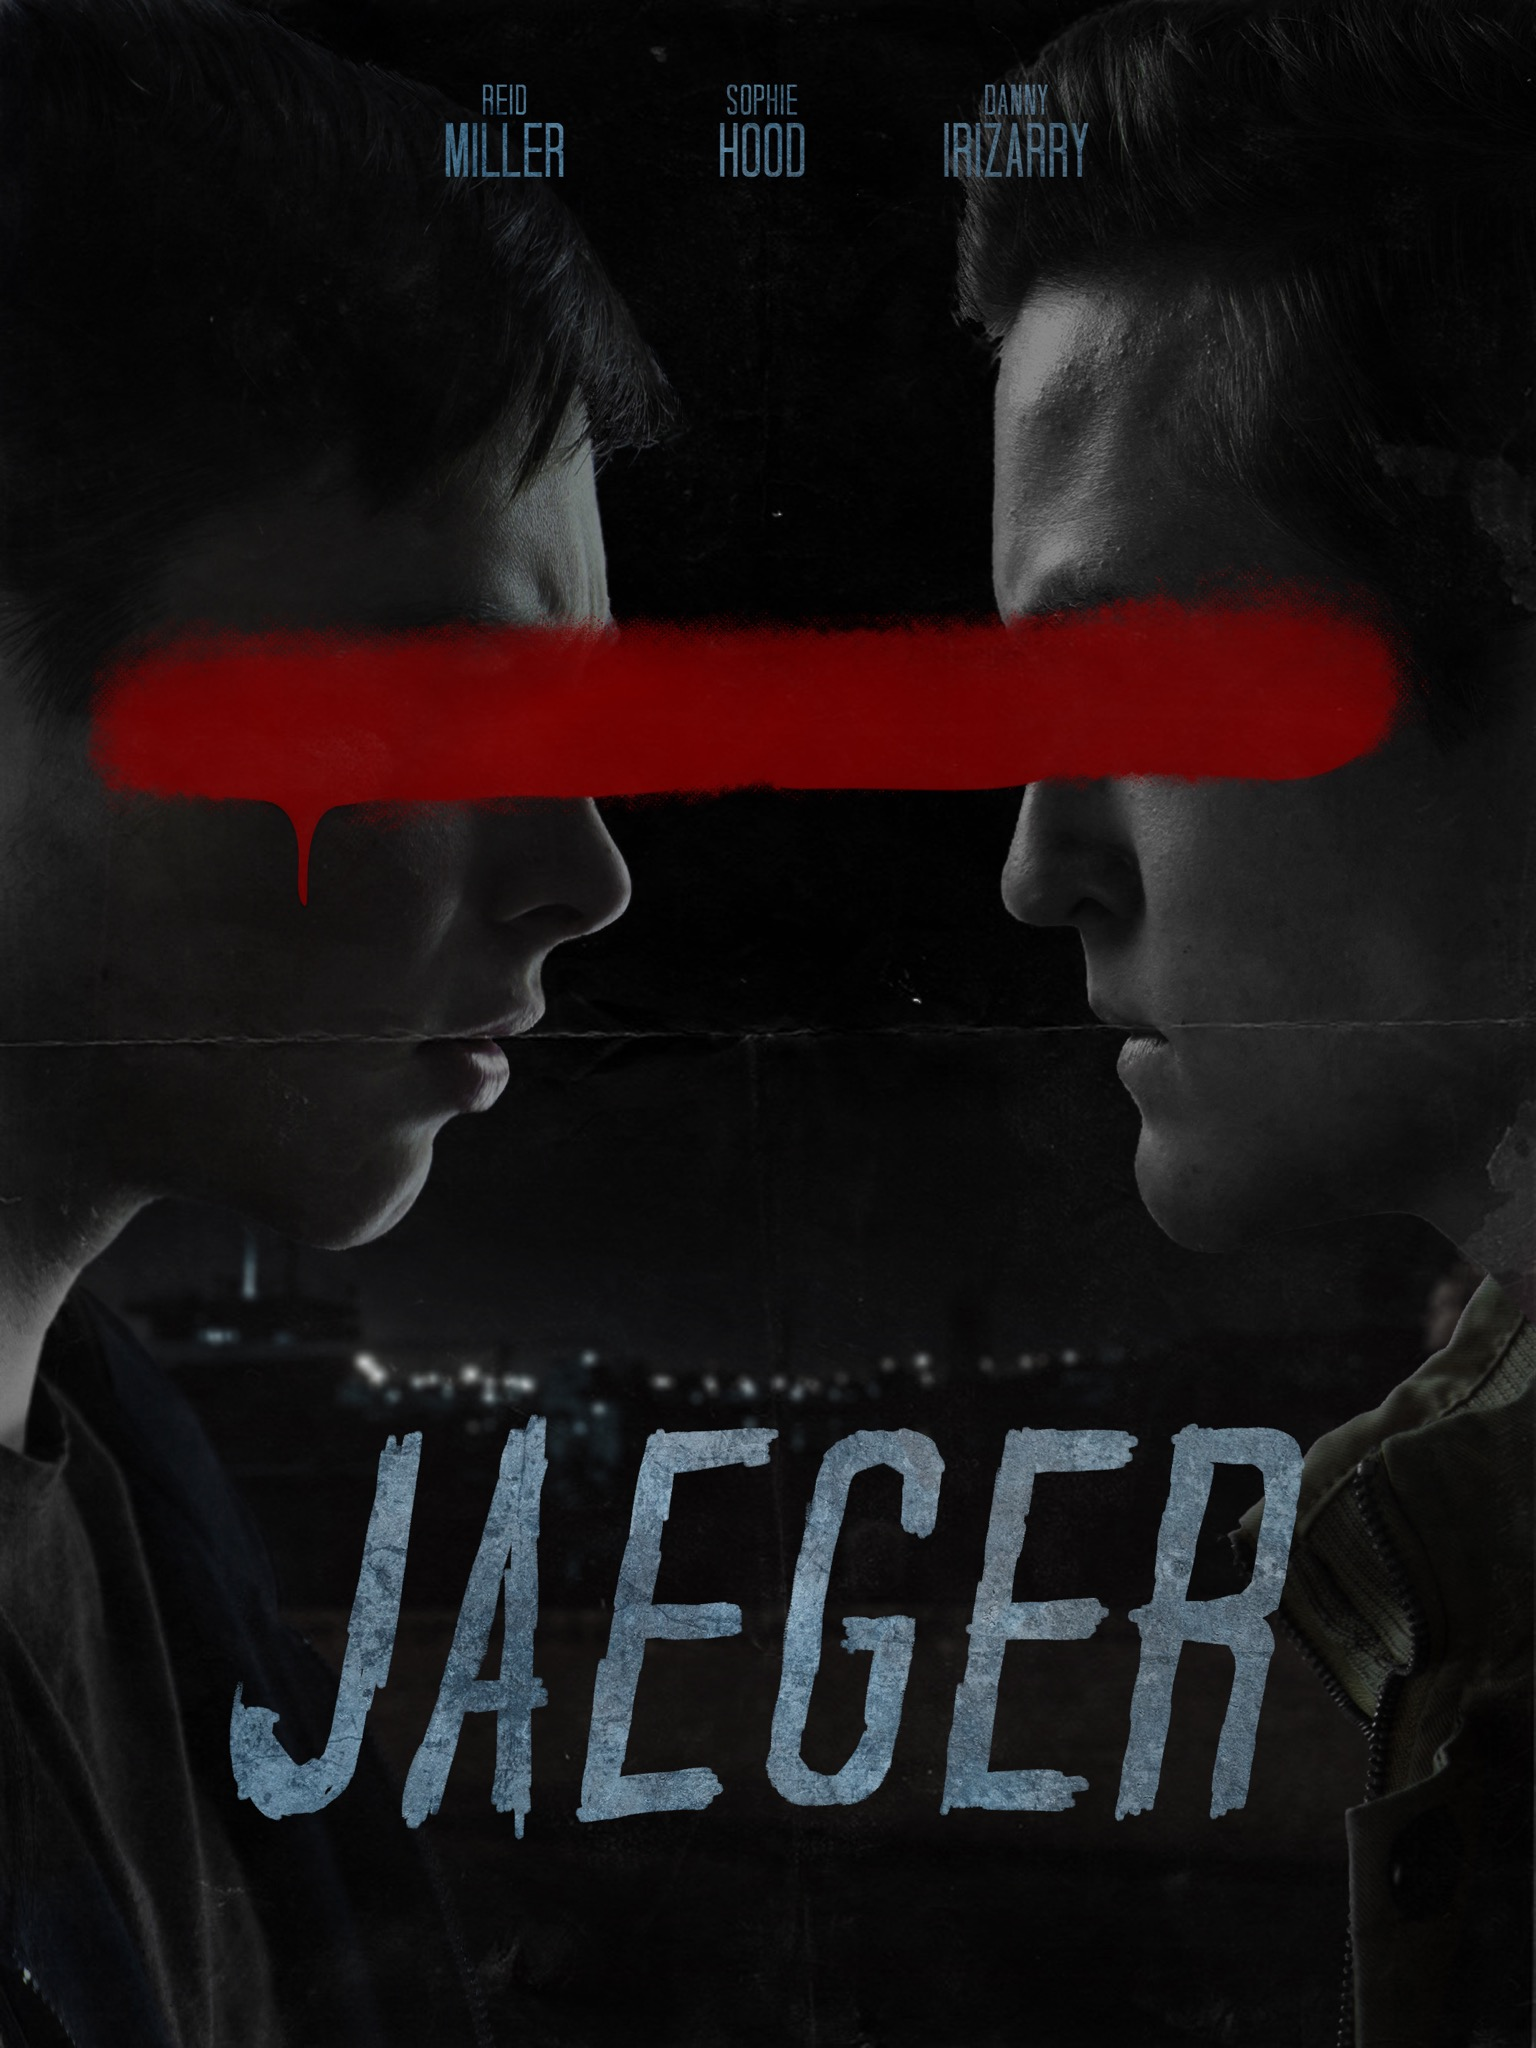 Jaeger hd on soap2day